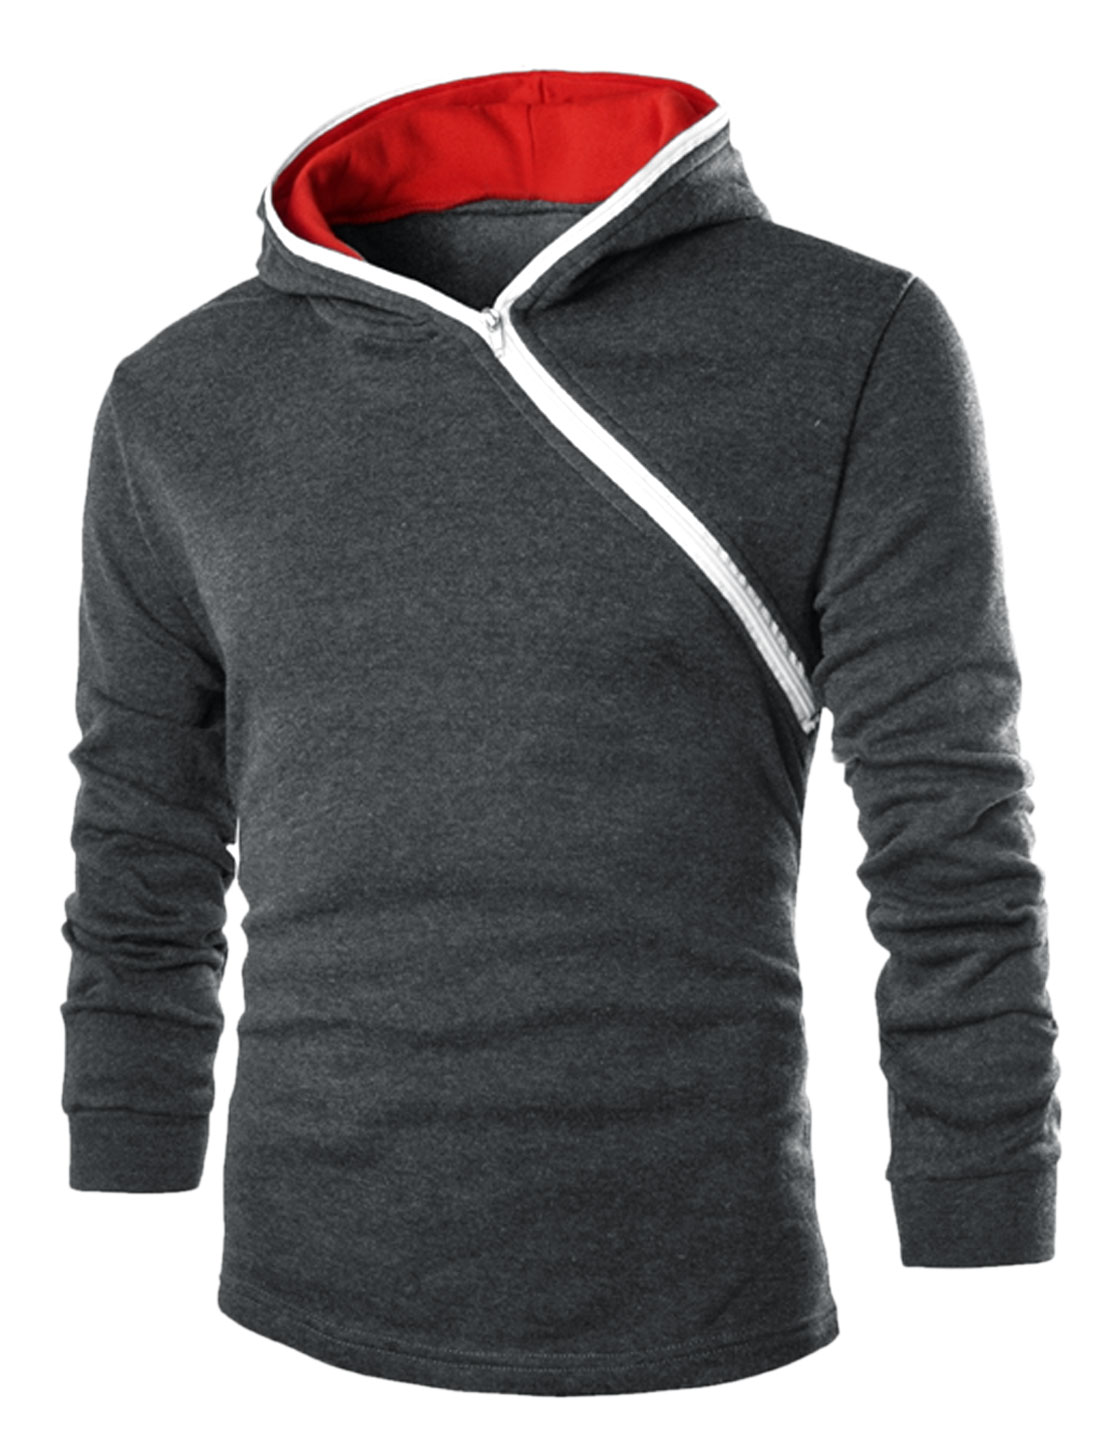 Men Half Inclined Zipper Contrast Color Detail Casual Hoodie Dark Gray M